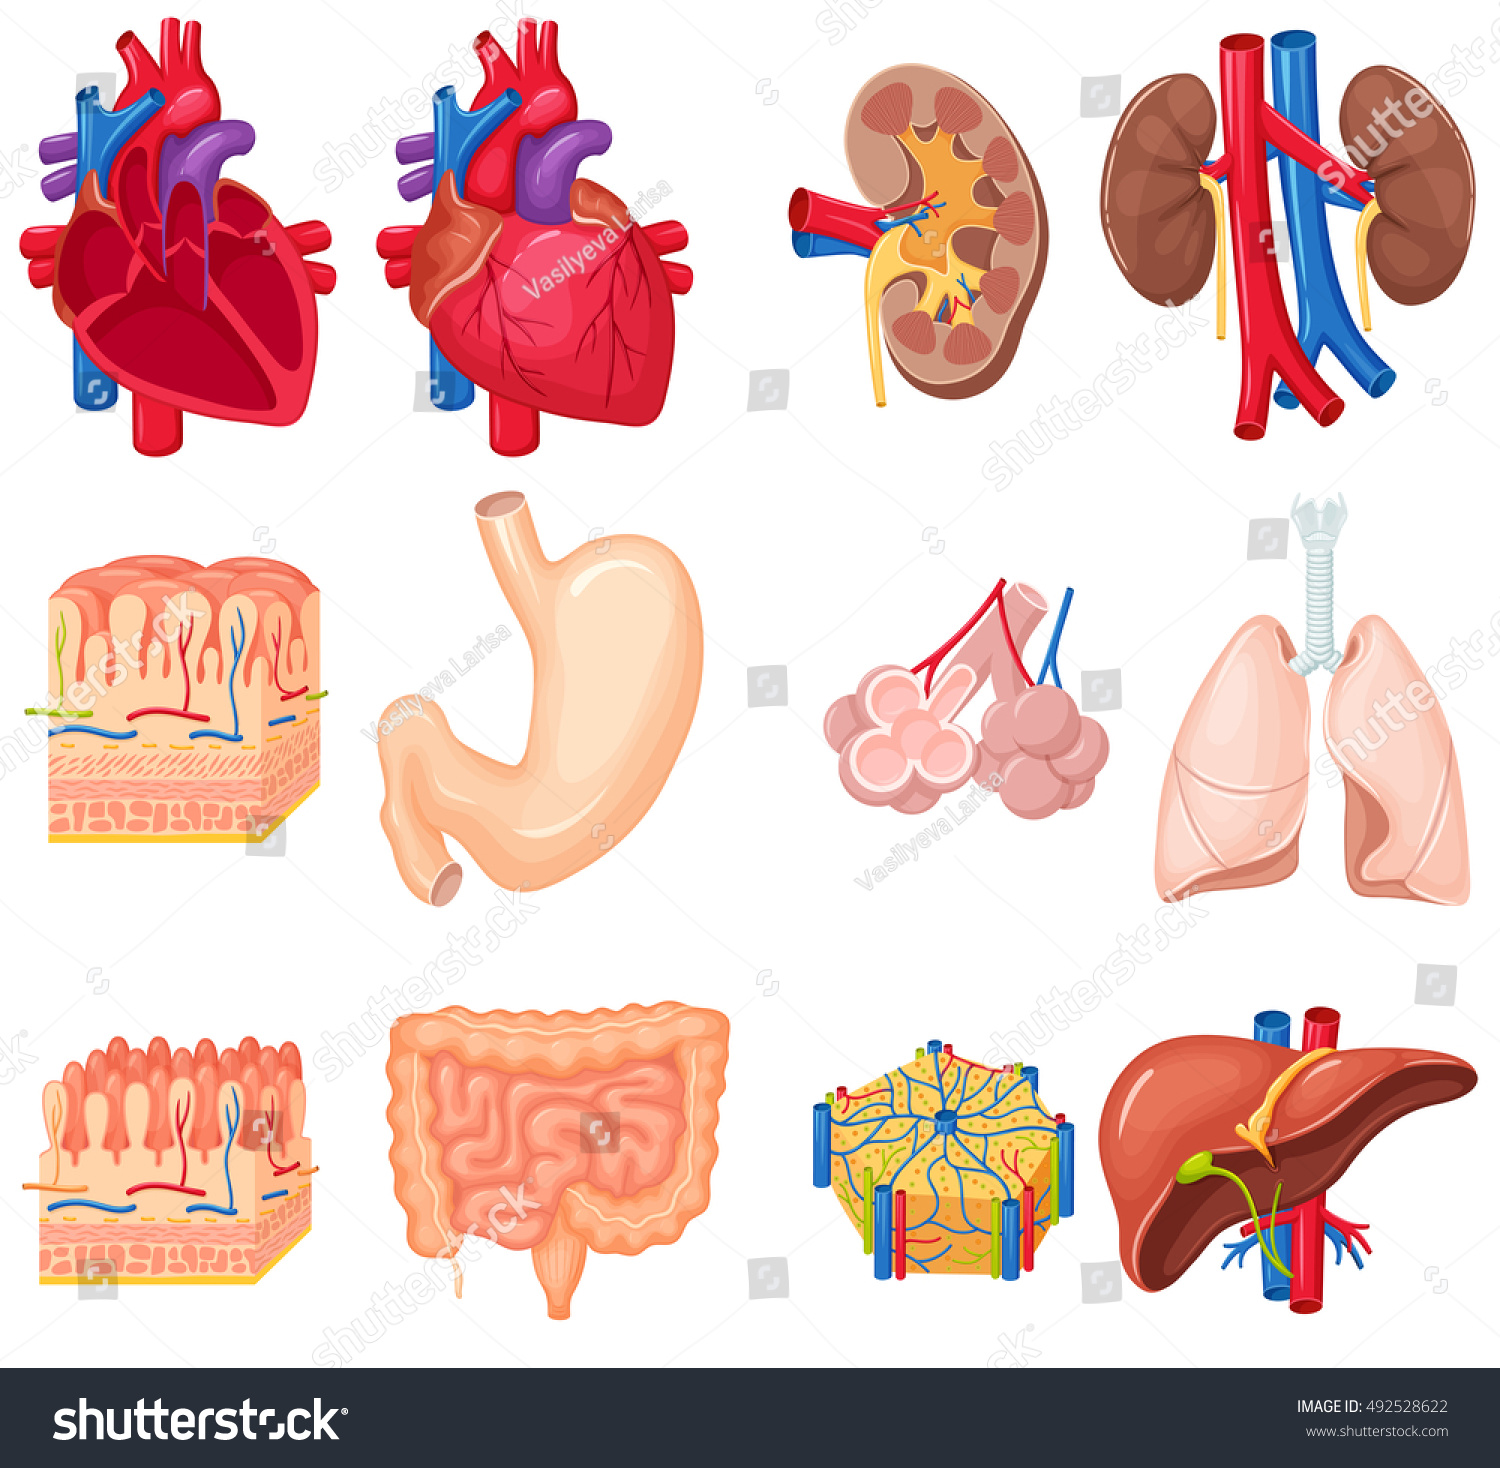 Human Organs Anatomy Heart Lungs Kidney Stock Vector (Royalty Free ...